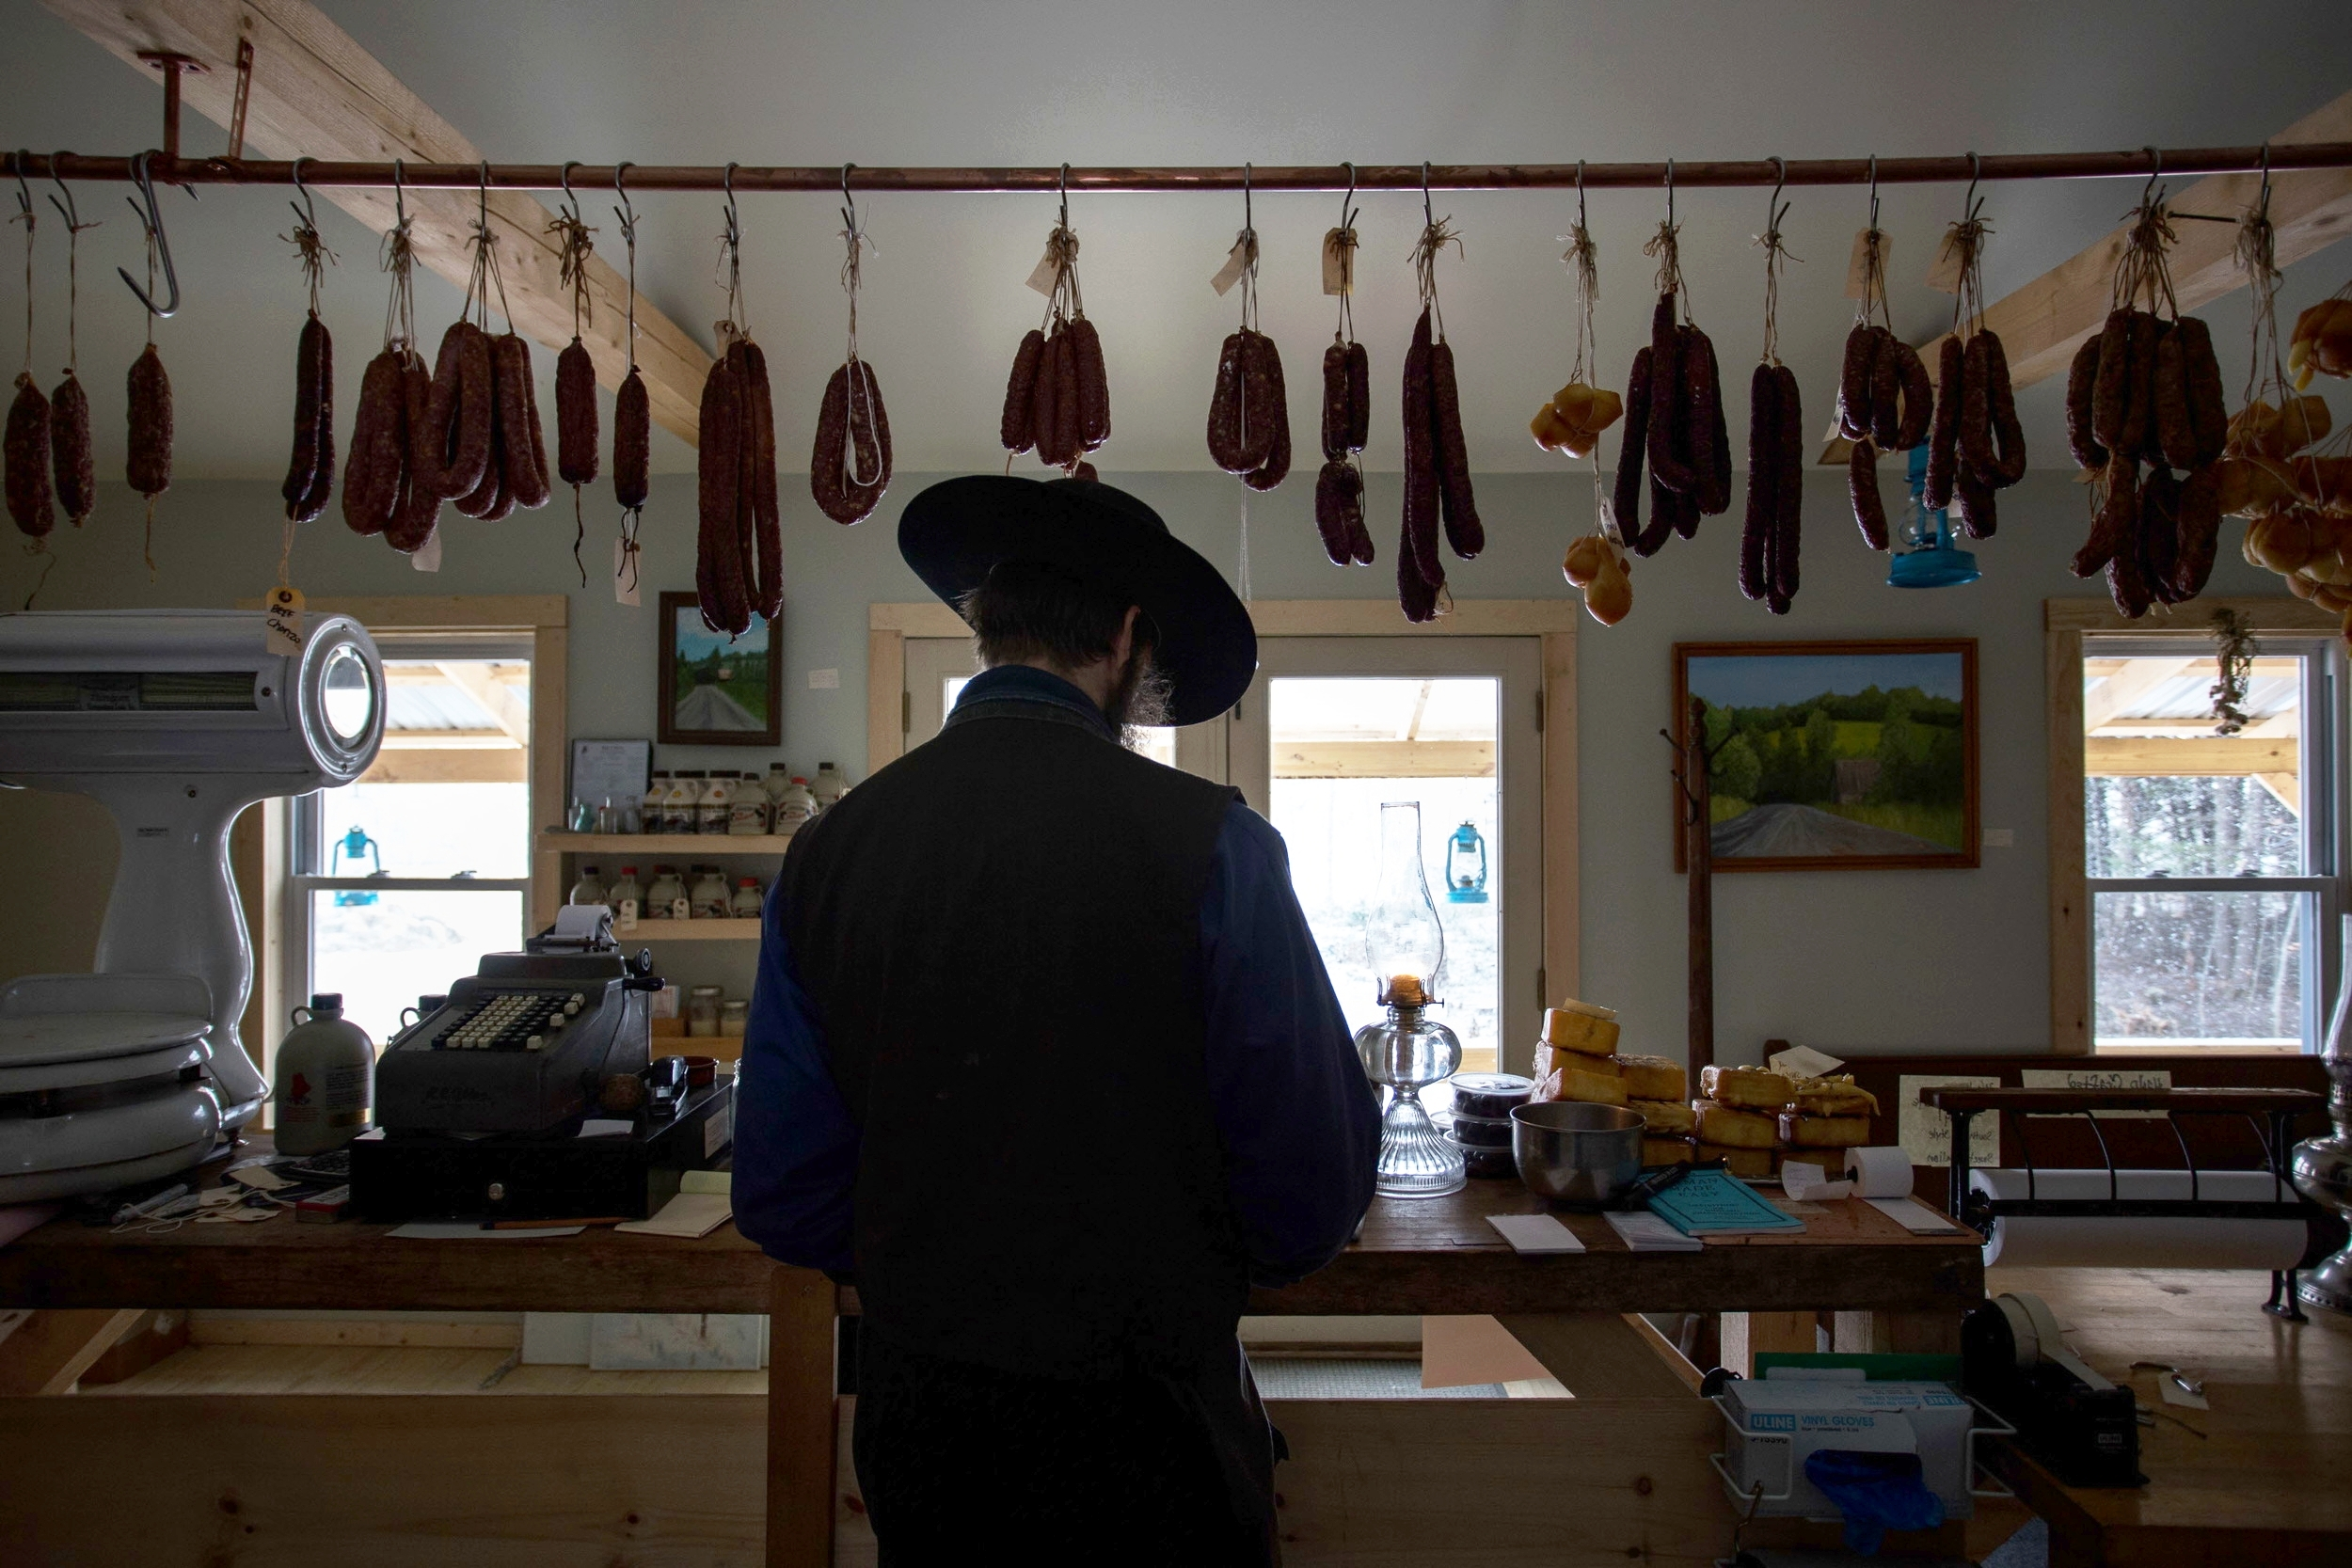 """UNITY, MAINE -- 01/12/2016 --Matthew Secich, 45, owns and manages an artisanal charcuterie as part of the thriving Amish community in Unity.Everything in the store is crafted sans electricity and other modern comforts, at prices """"anyone can afford,"""" he said.Secich and his family became Amish a few months ago. They moved to Unity, which has a thriving Amish community, and forsook many aspects of the modern world, including electricity. Secich has traded in his five cars for three horses, bright lights for the softer glow of lanterns and his white chef coat for drab Amish clothes and an impressive beard. (Micky Bedell   BDN)"""